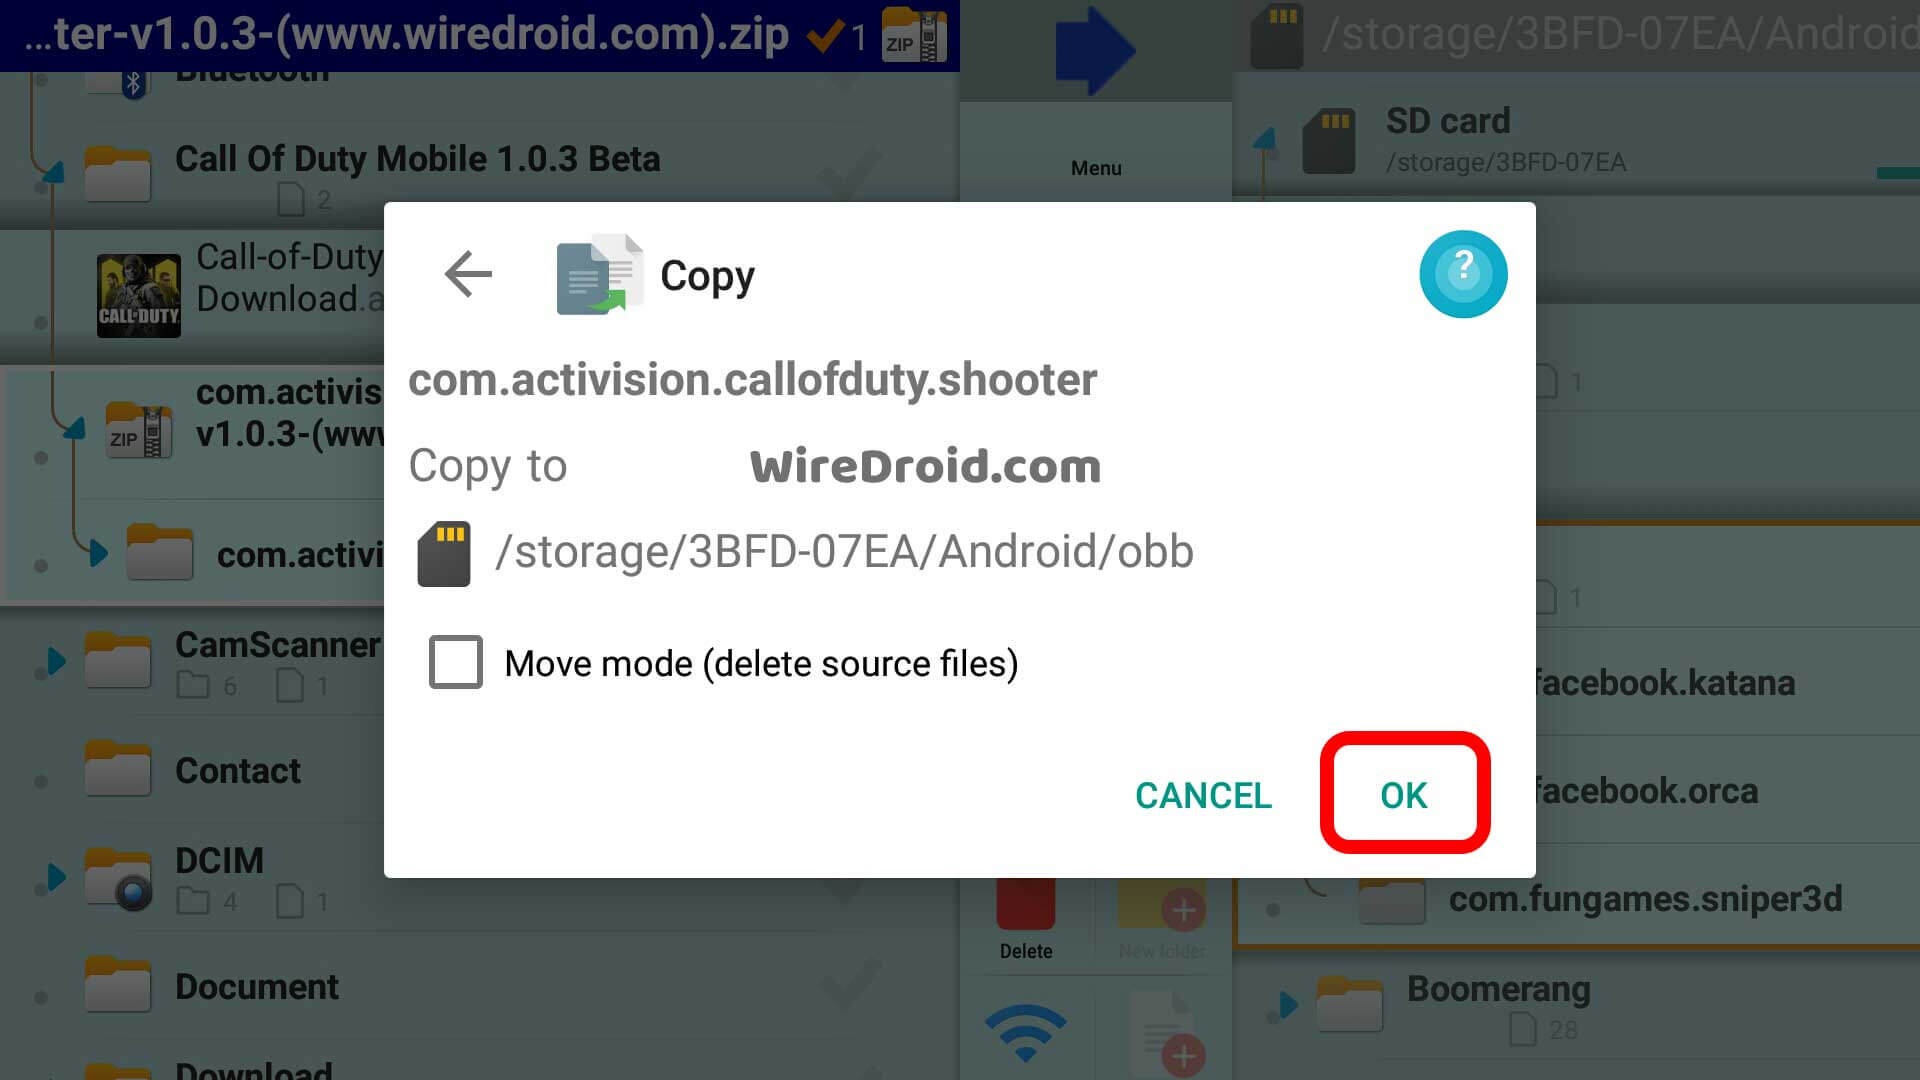 Call of Duty Mobile APK + OBB Download | All Steps Included - Wire Droid